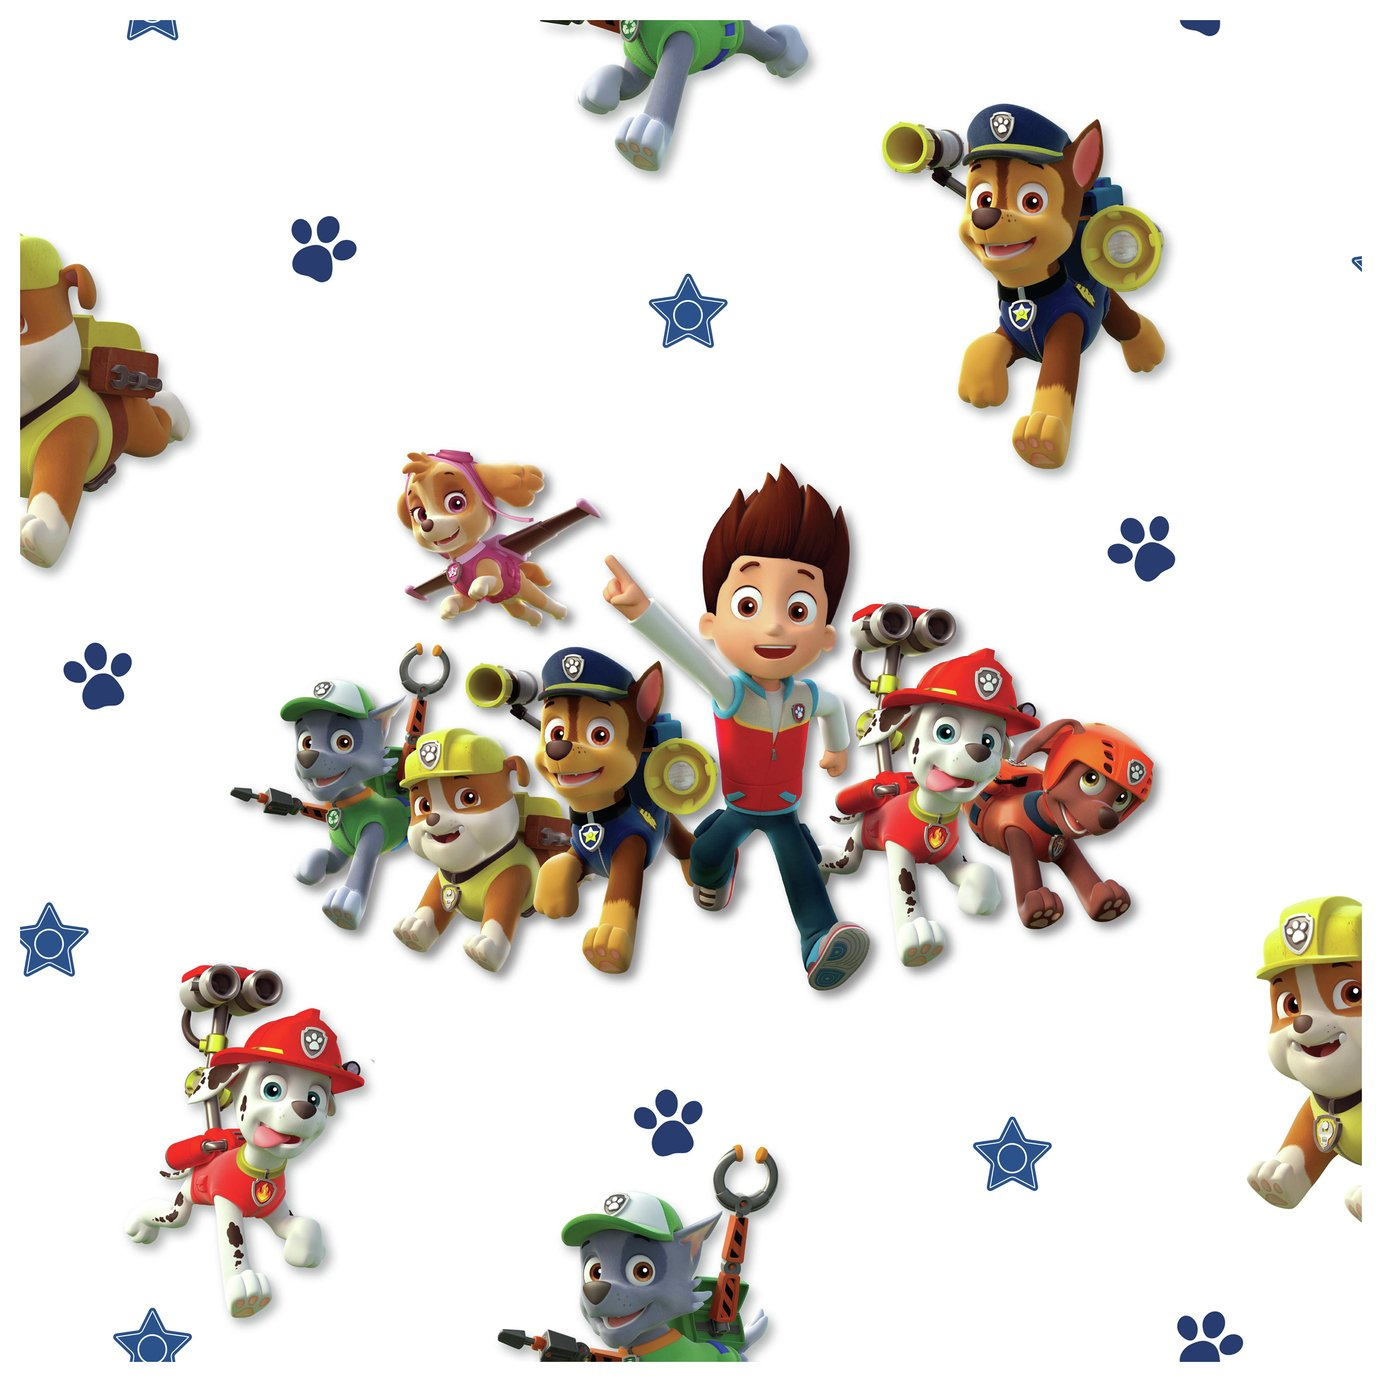 paw patrol wallpaper.